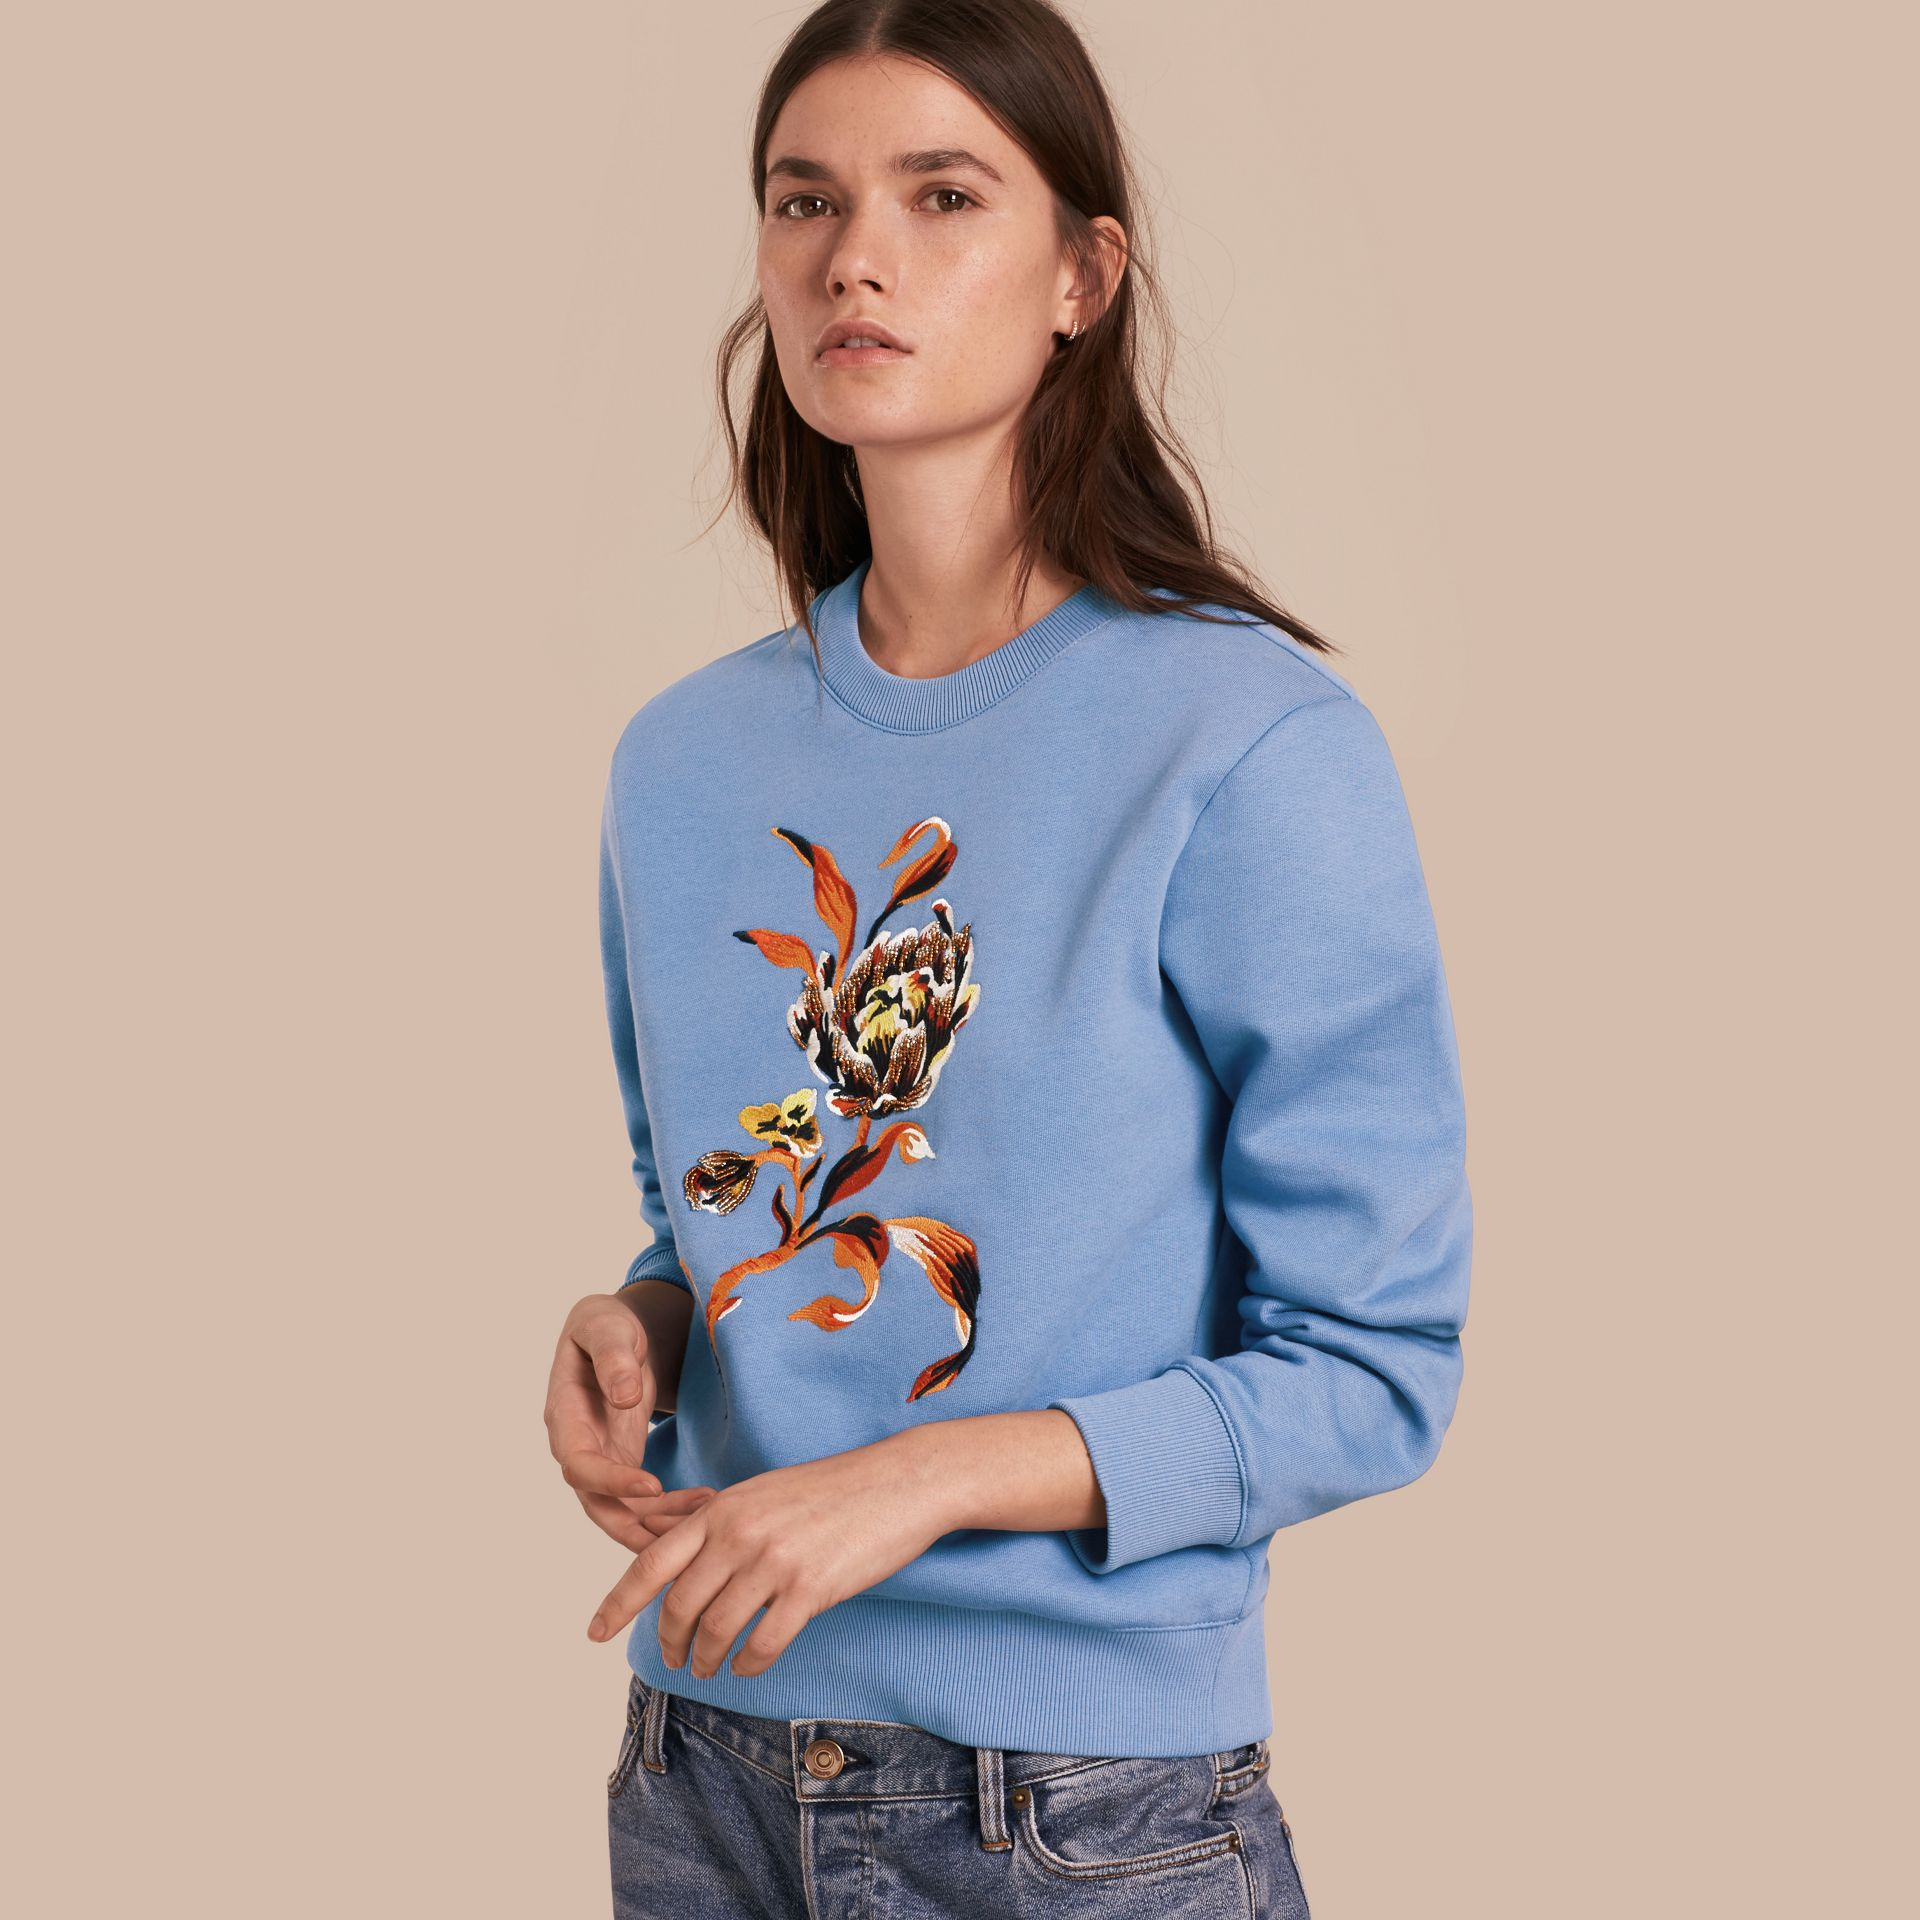 Pale hydrangea blue Embroidered Floral Motif Cotton Blend Sweatshirt Pale Hydrangea Blue - gallery image 1